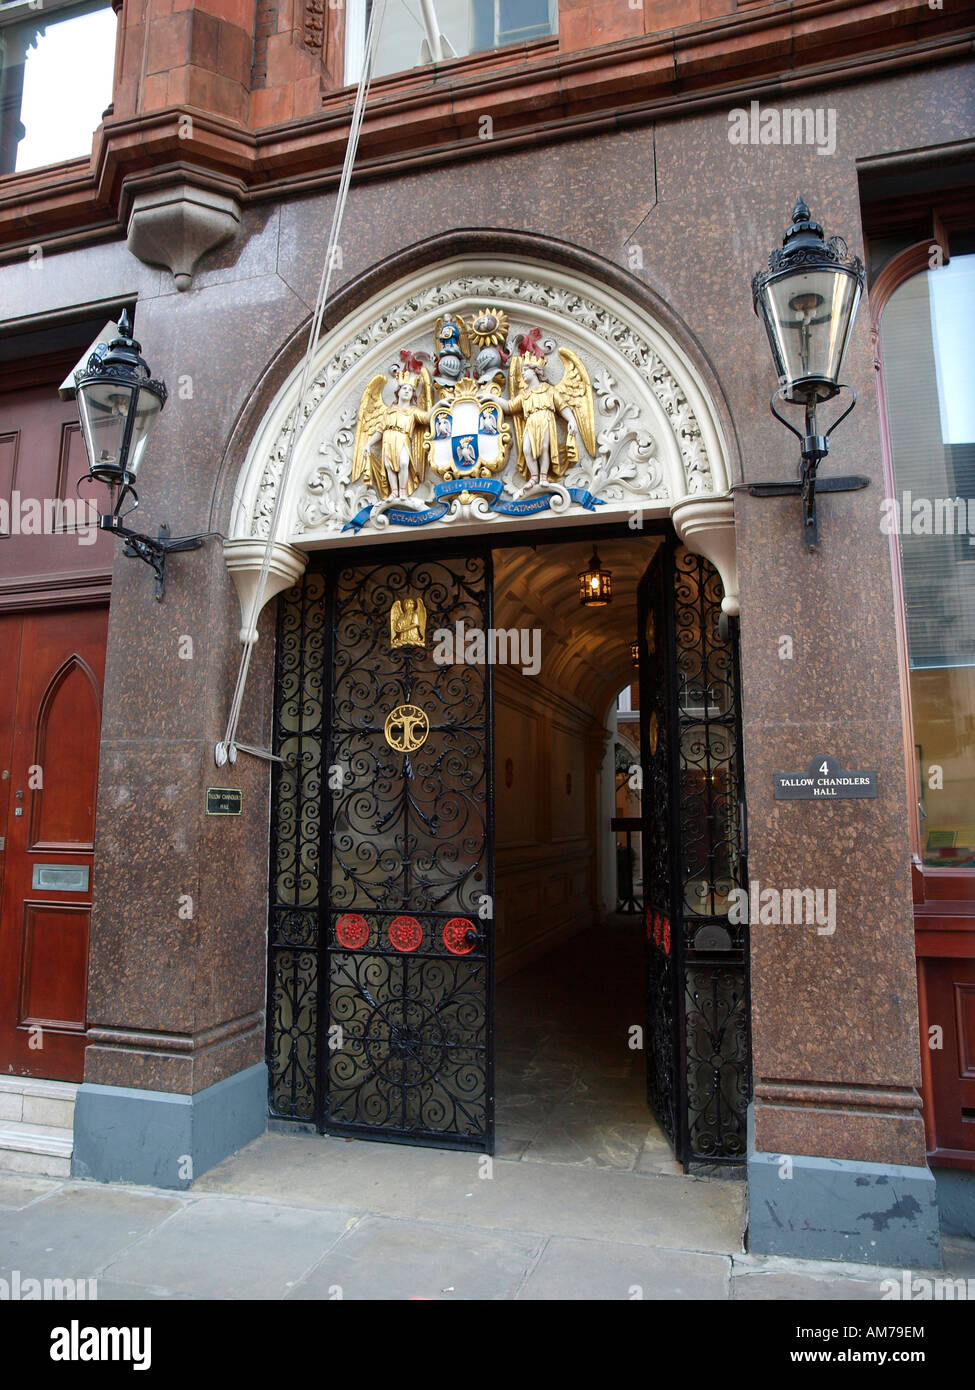 The entrance to Tallow Chandlers Hall, Dowgate Hill, London, EC4R 2SH - Stock Image